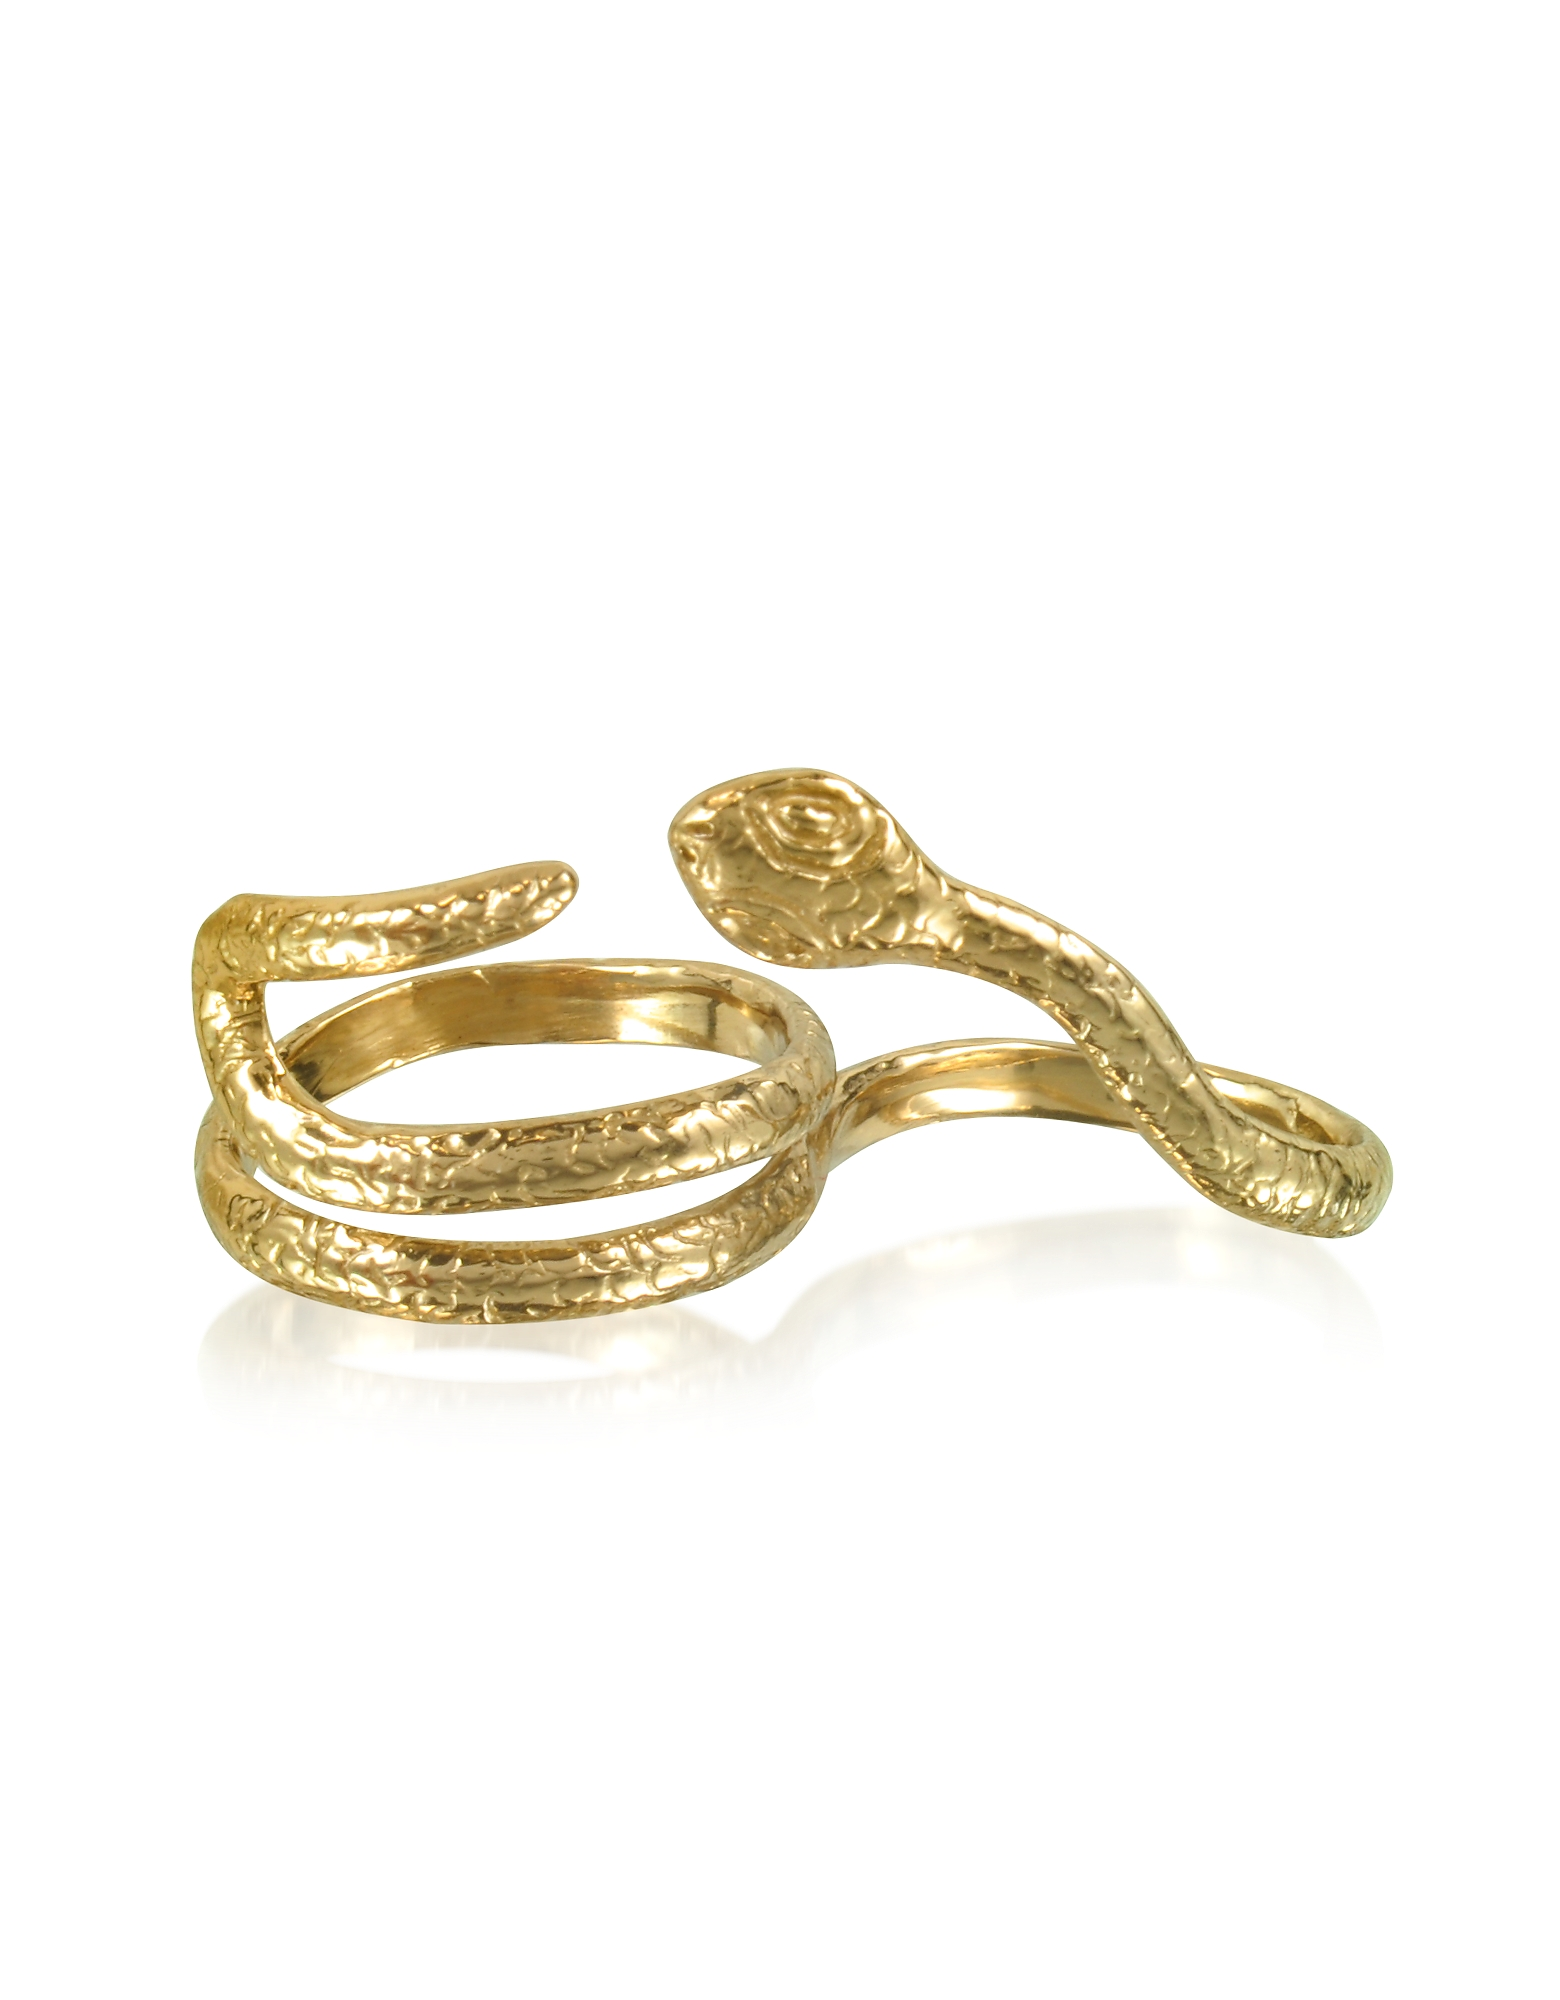 Bernard Delettrez Rings, Two Fingers Bronze Ring w/2 Laps Snake